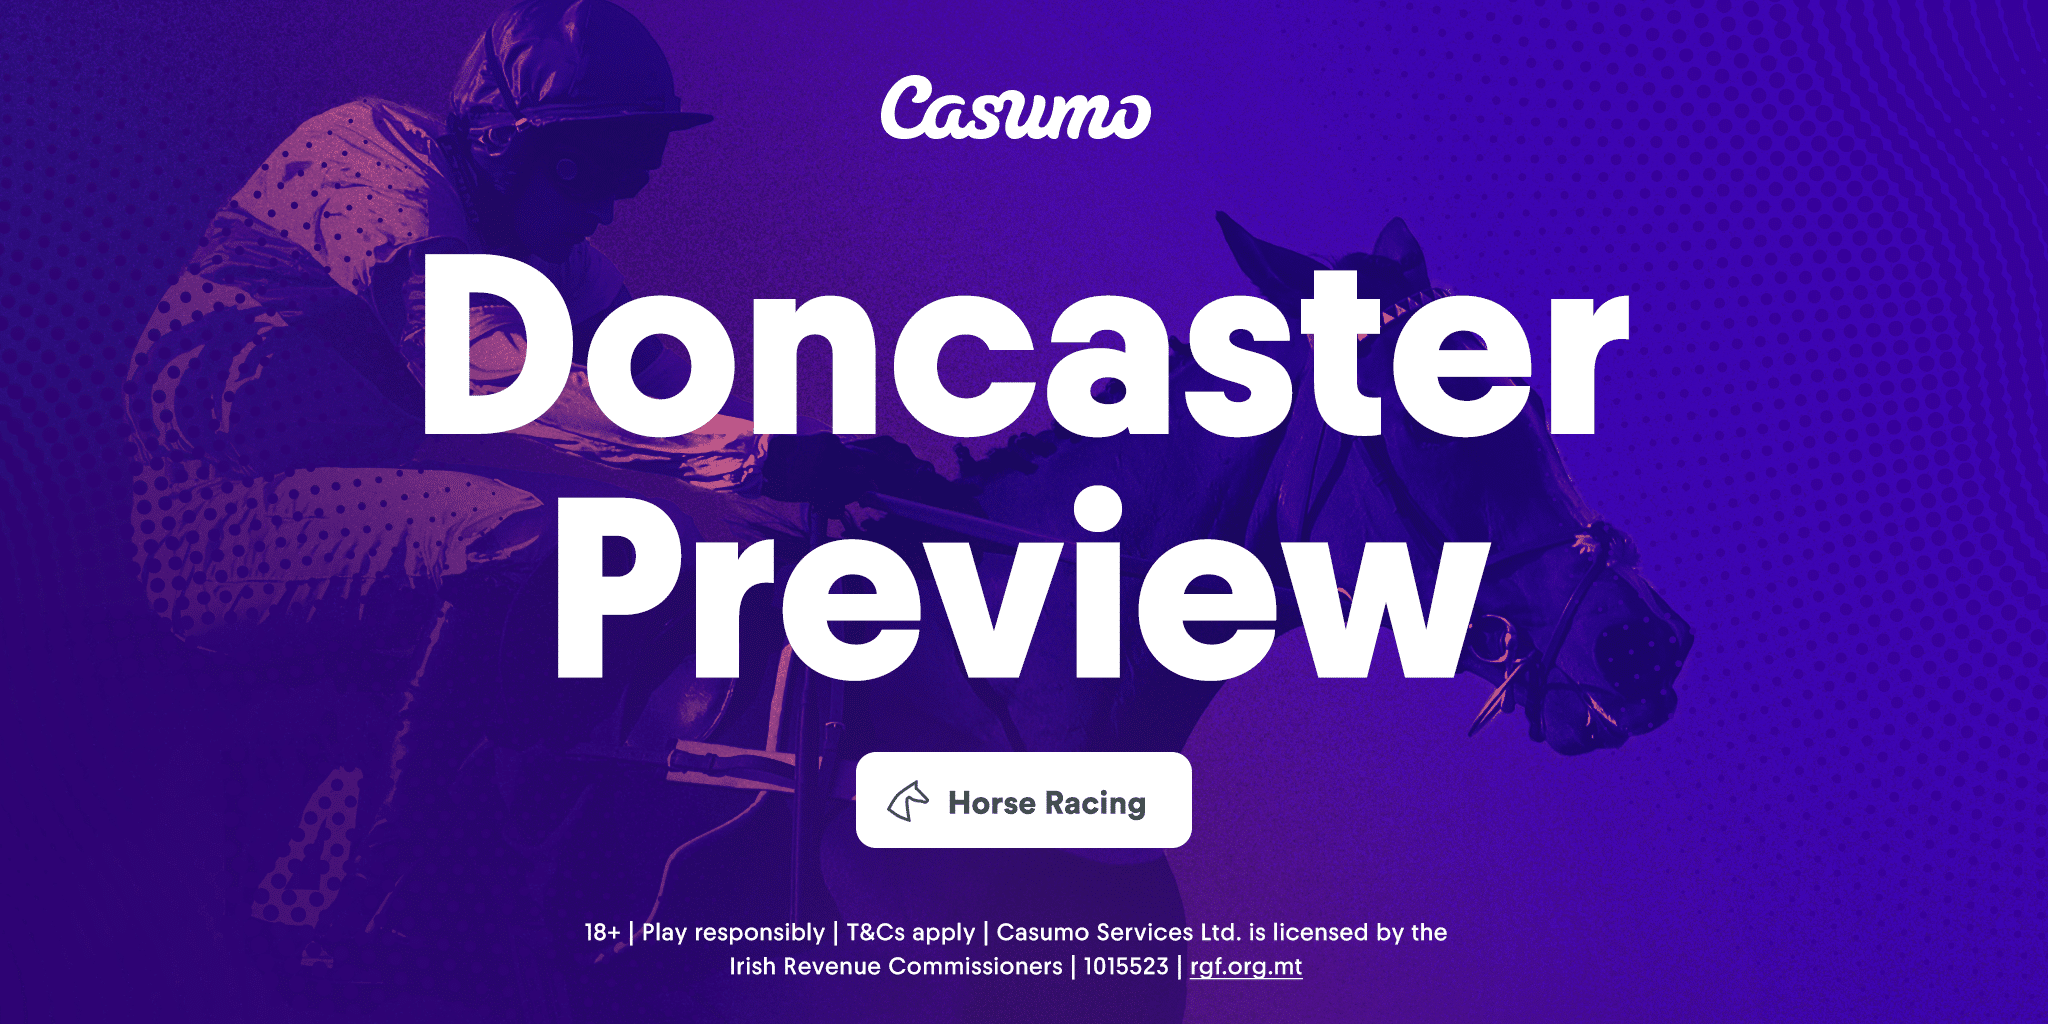 Doncaster preview